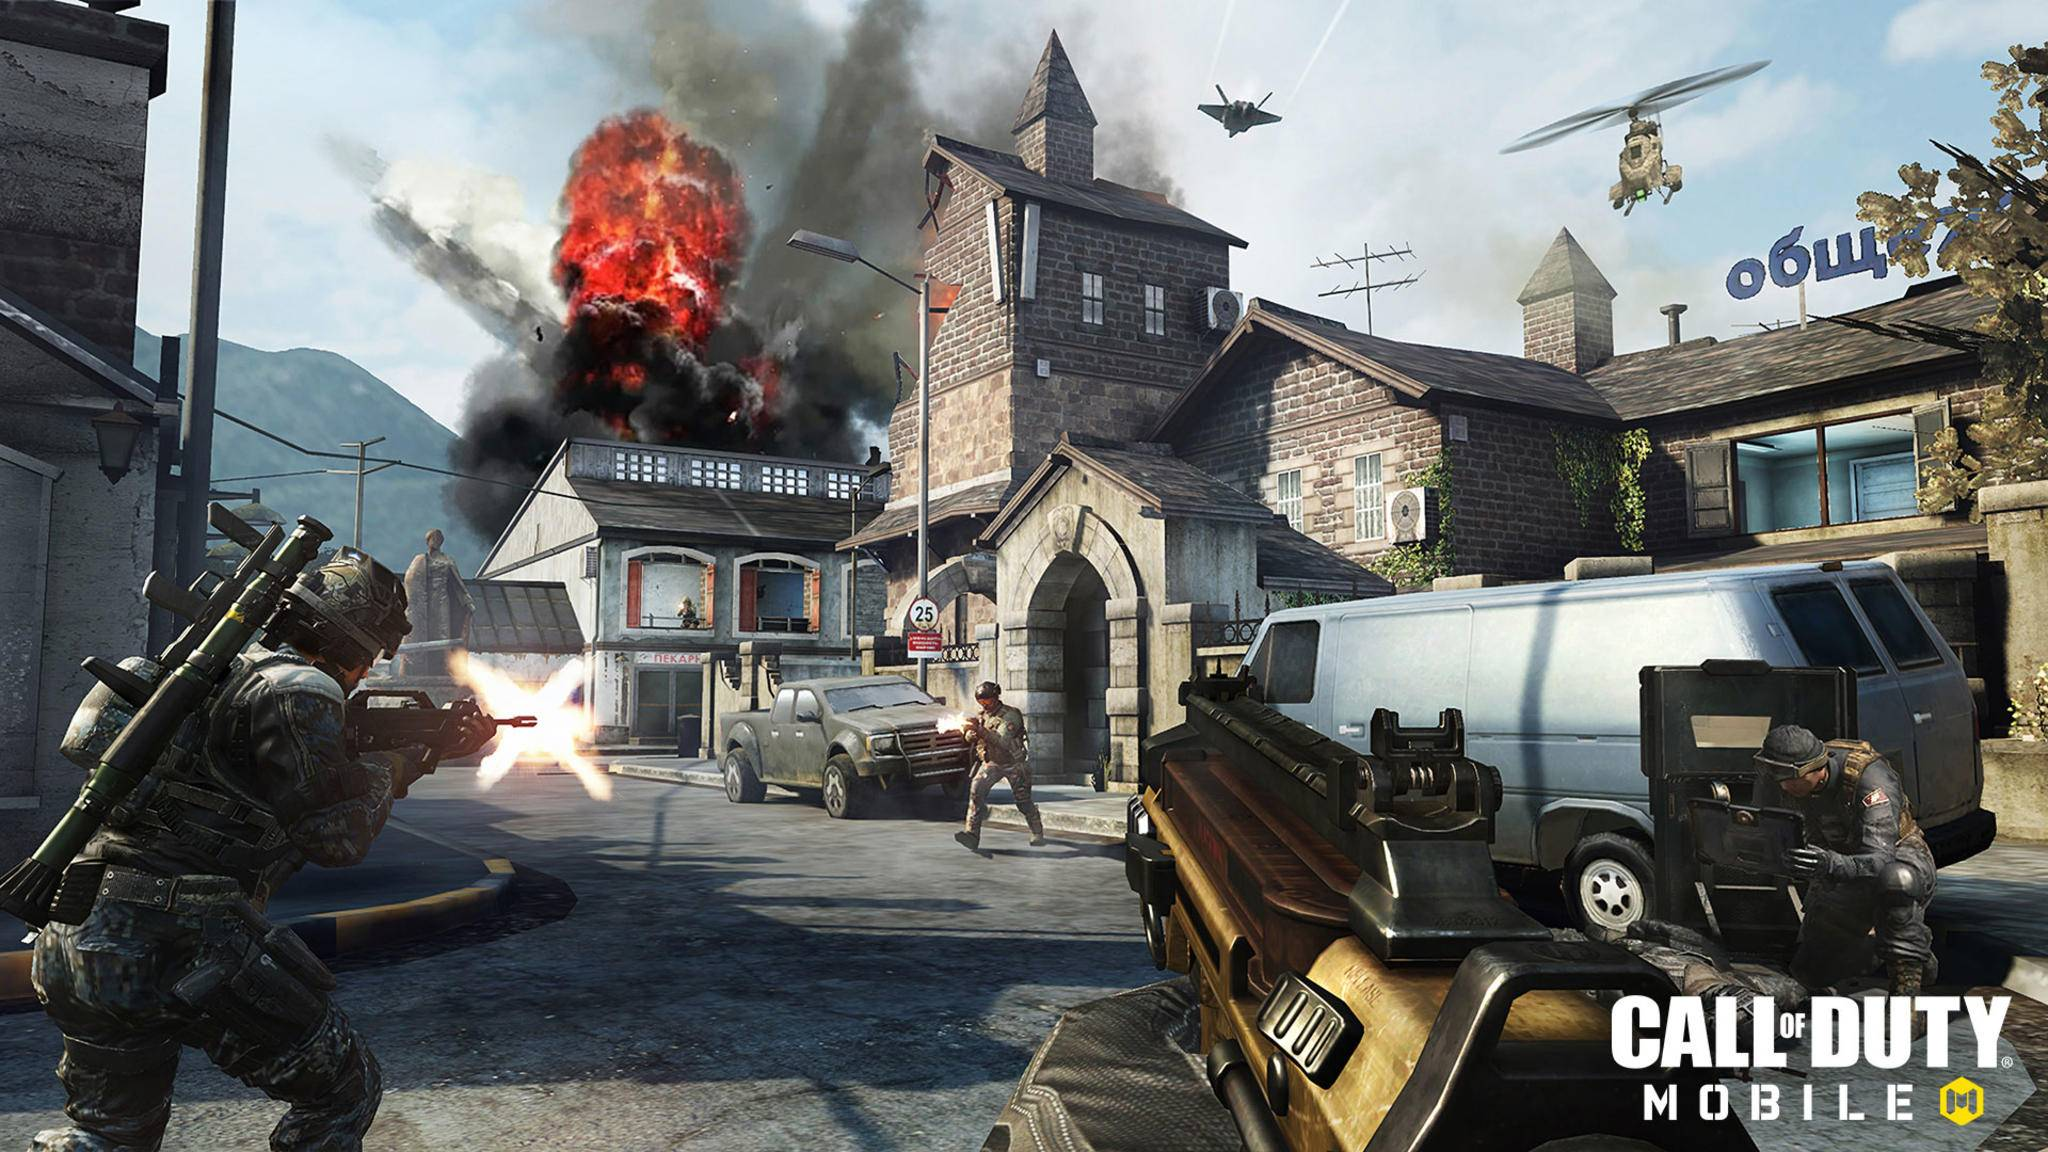 call-of-duty-mobile-screenshot